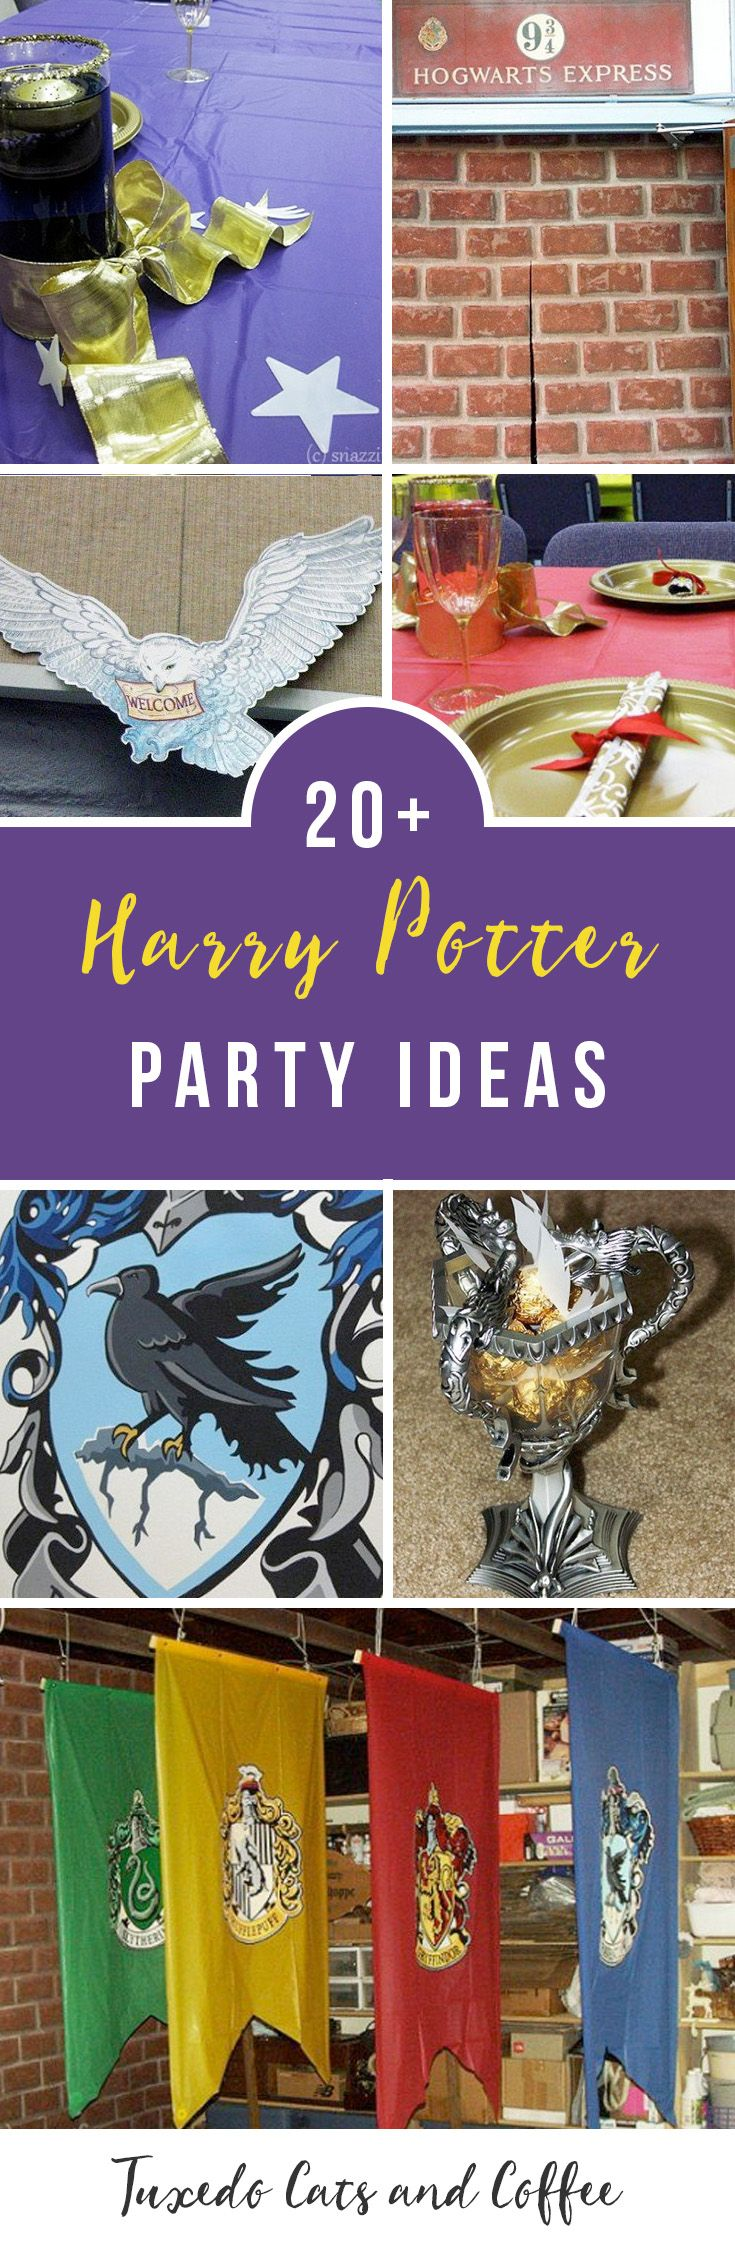 We held this Harry Potter party as an awards ceremony and end-of-the-year banquet for a group at a high school. This post will give you Harry Potter party ideas and show you how to hold your own Harry Potter birthday party and make all the decorations you need to transform your house or a banquet hall or any large room into the Hogwarts great hall, complete with an extra guide showing you how to make Harry Potter recipes like Honeydukes's sweets and other baked goods. Here is our ultimate…